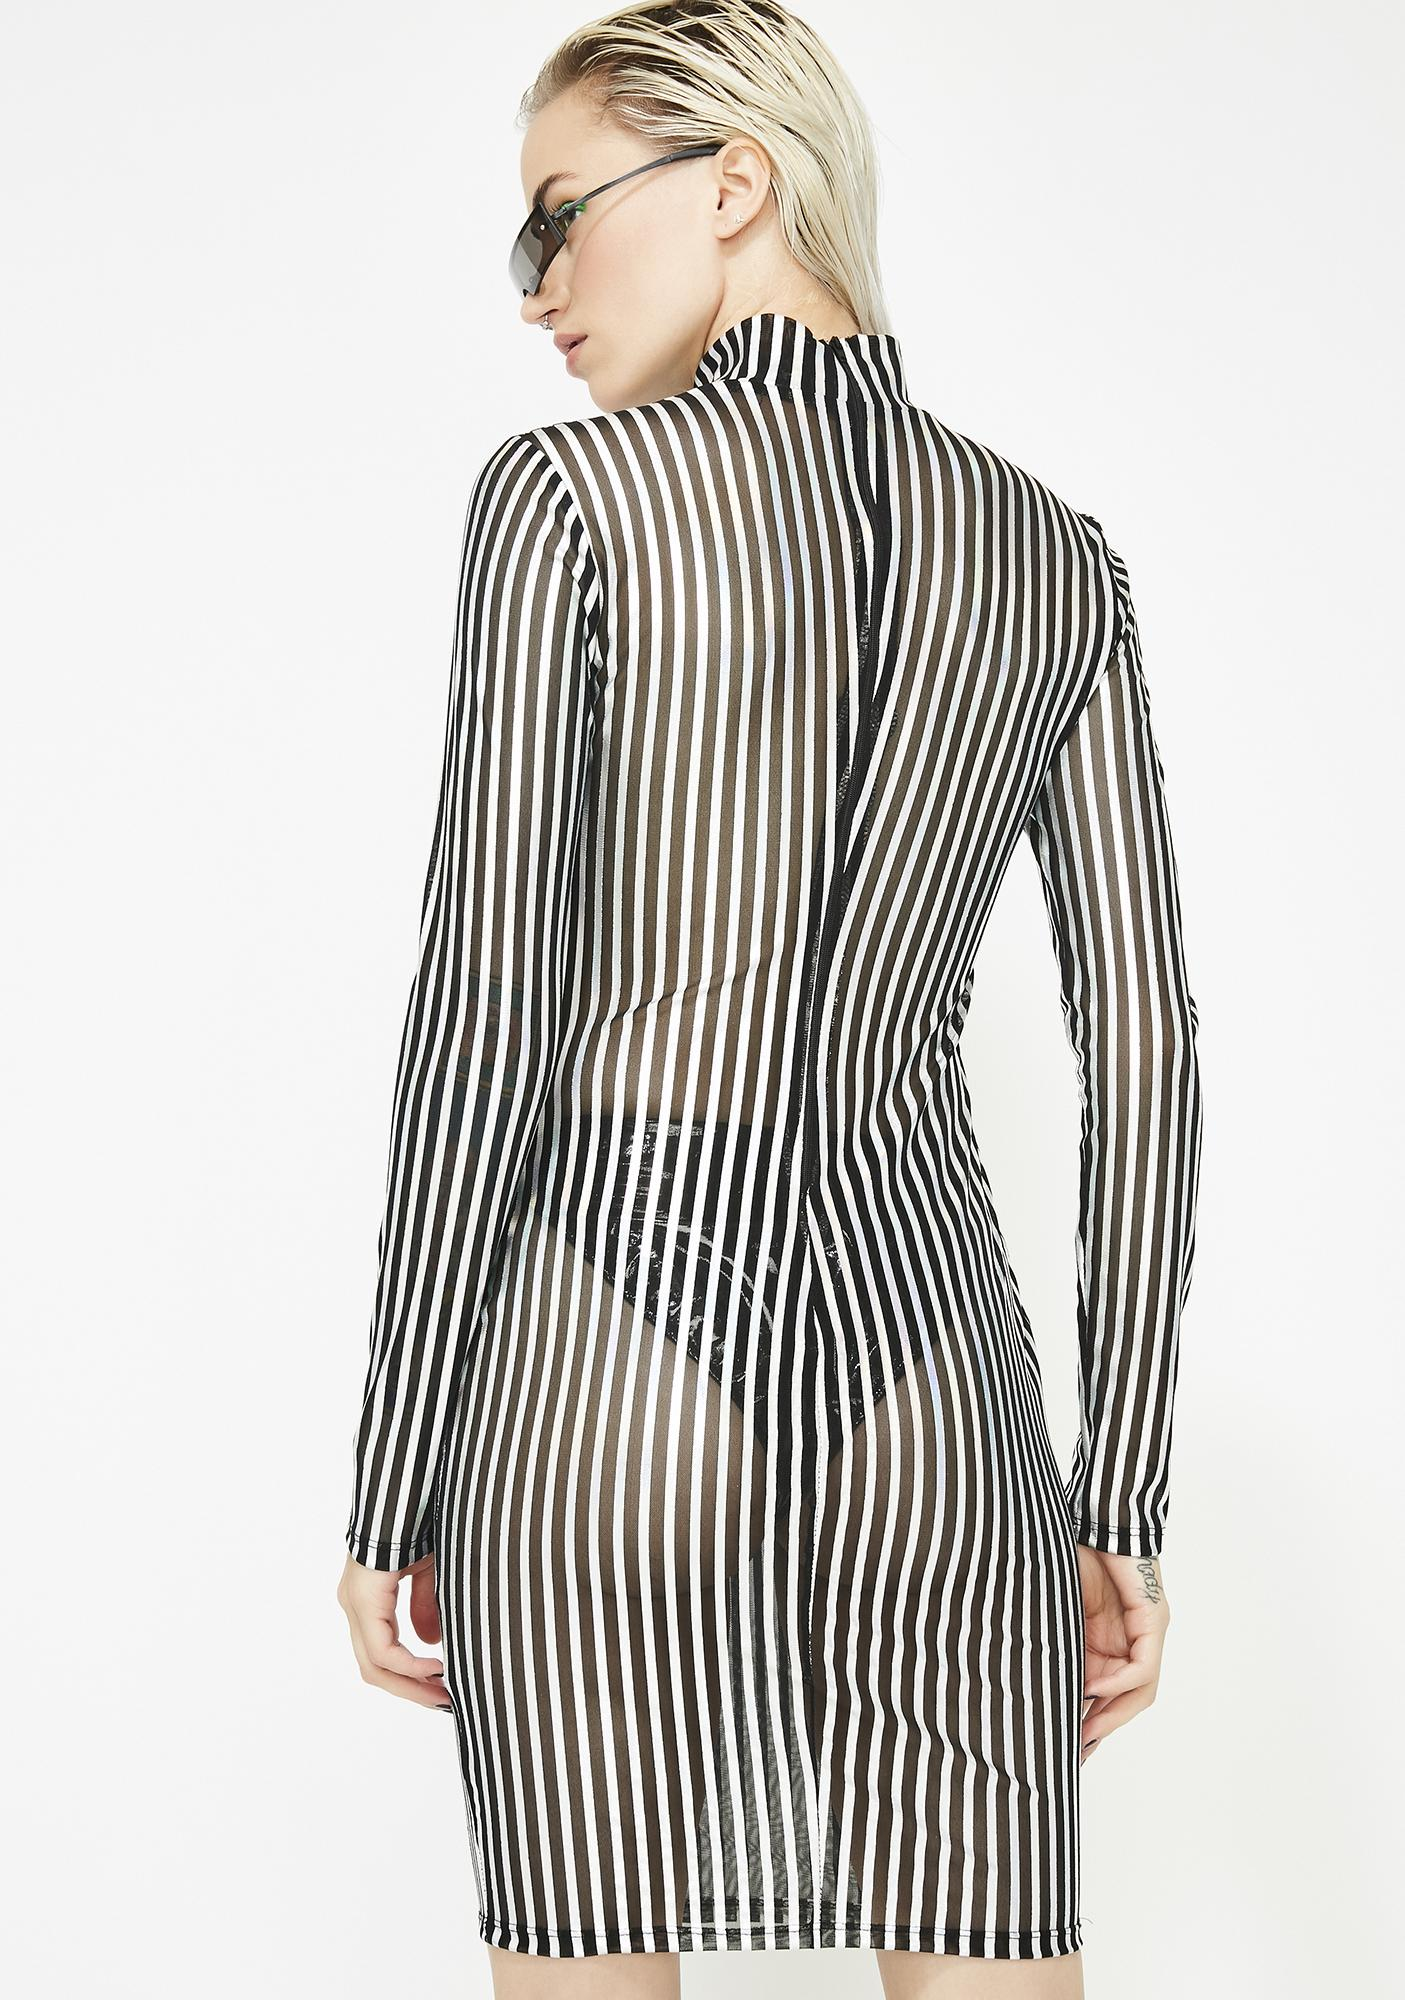 Groovy Thang Striped Dress